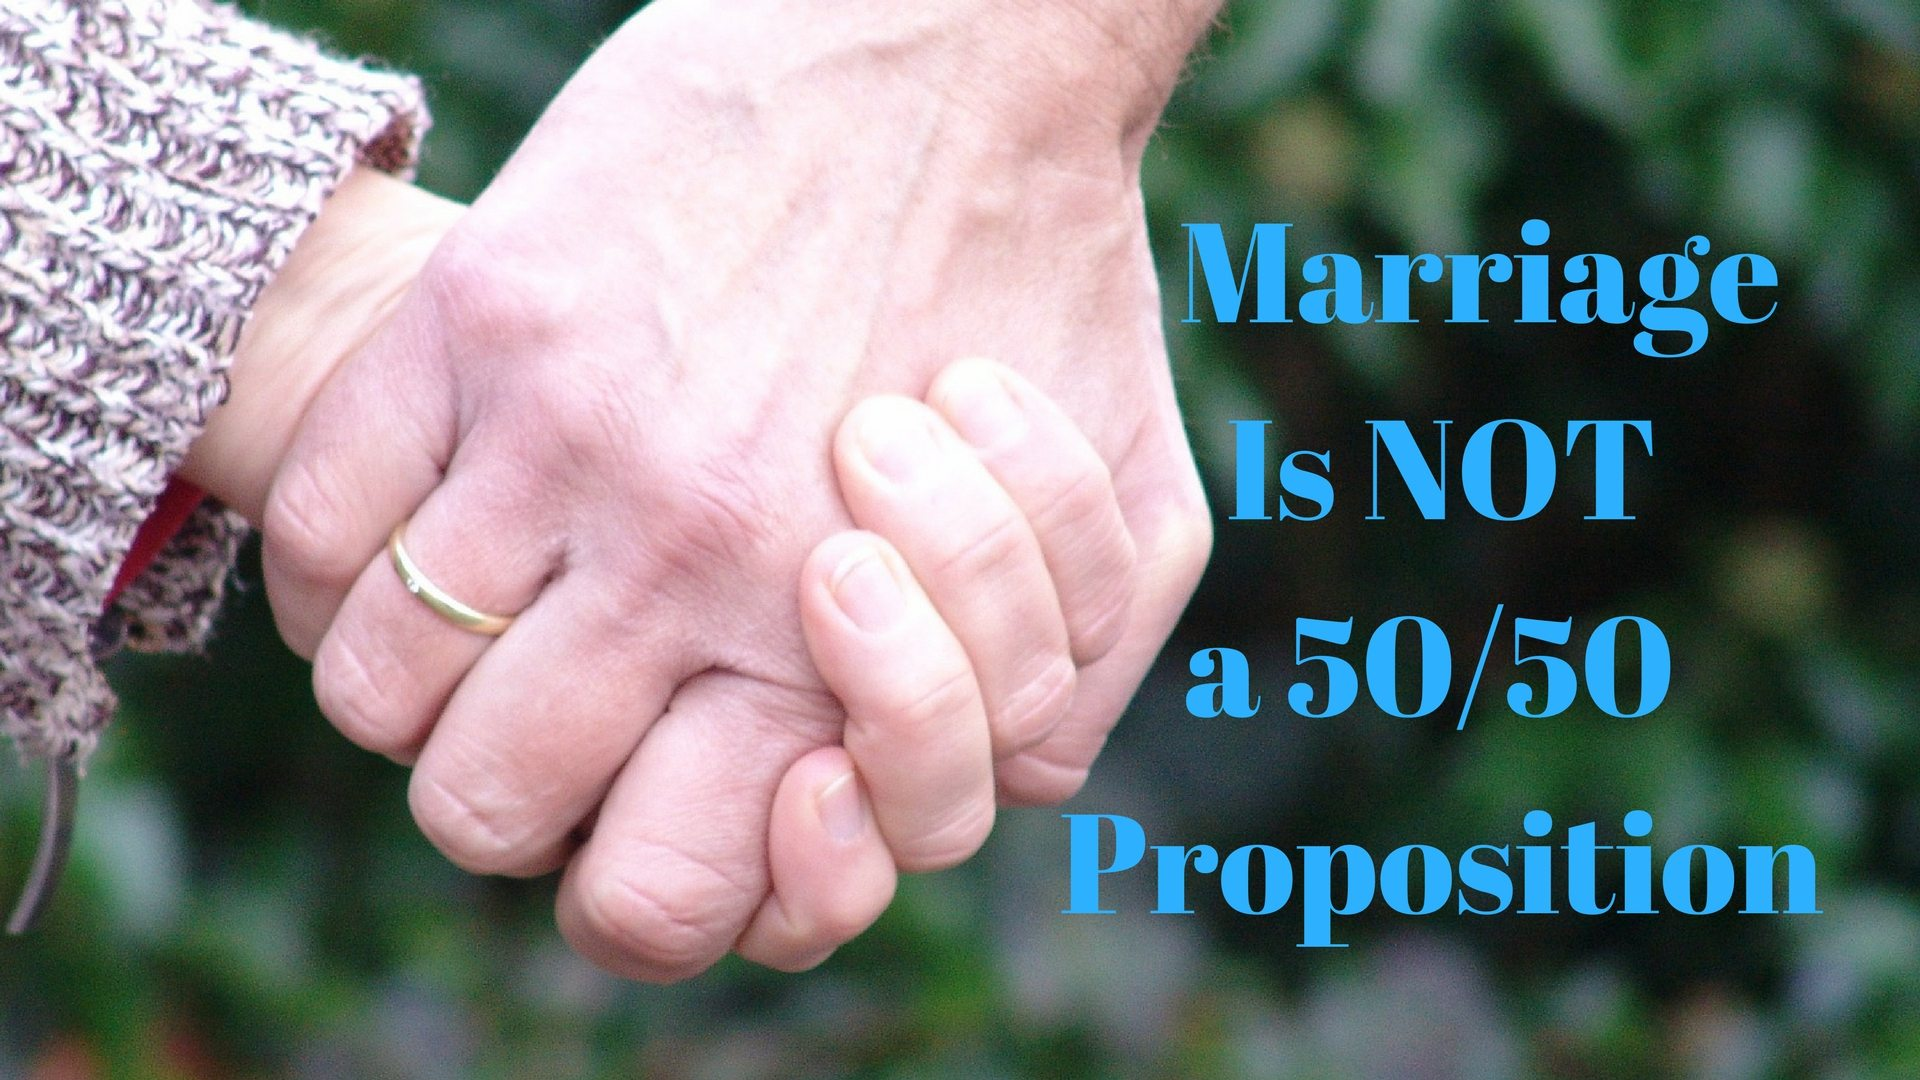 Marriage Is Not a 50/50 Proposition - Pixabay - Canva